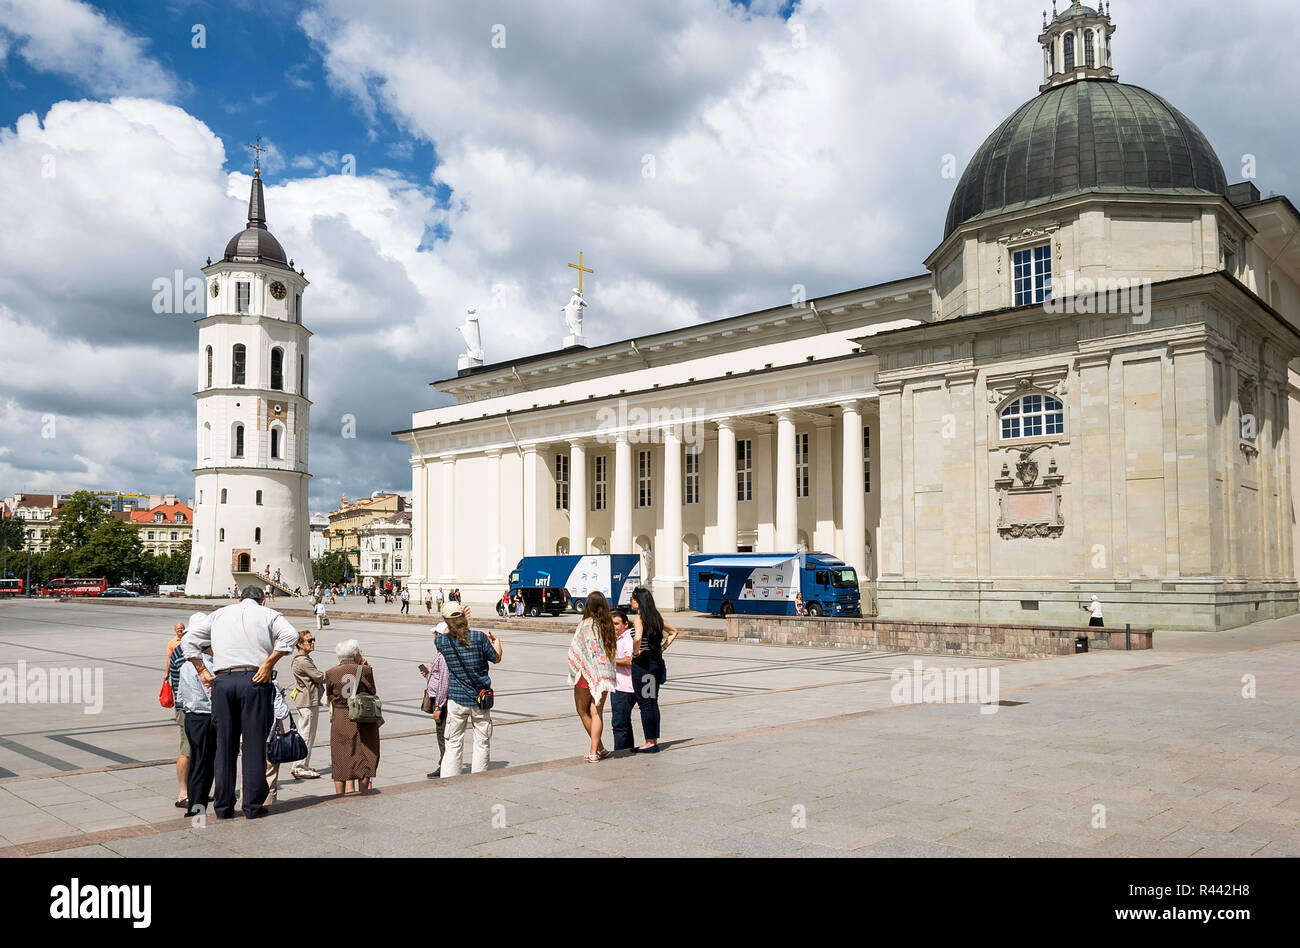 Cathedral Basilica of St.Stanislaus and St.Ladislaus of Vilnius, Lithuania - Stock Image